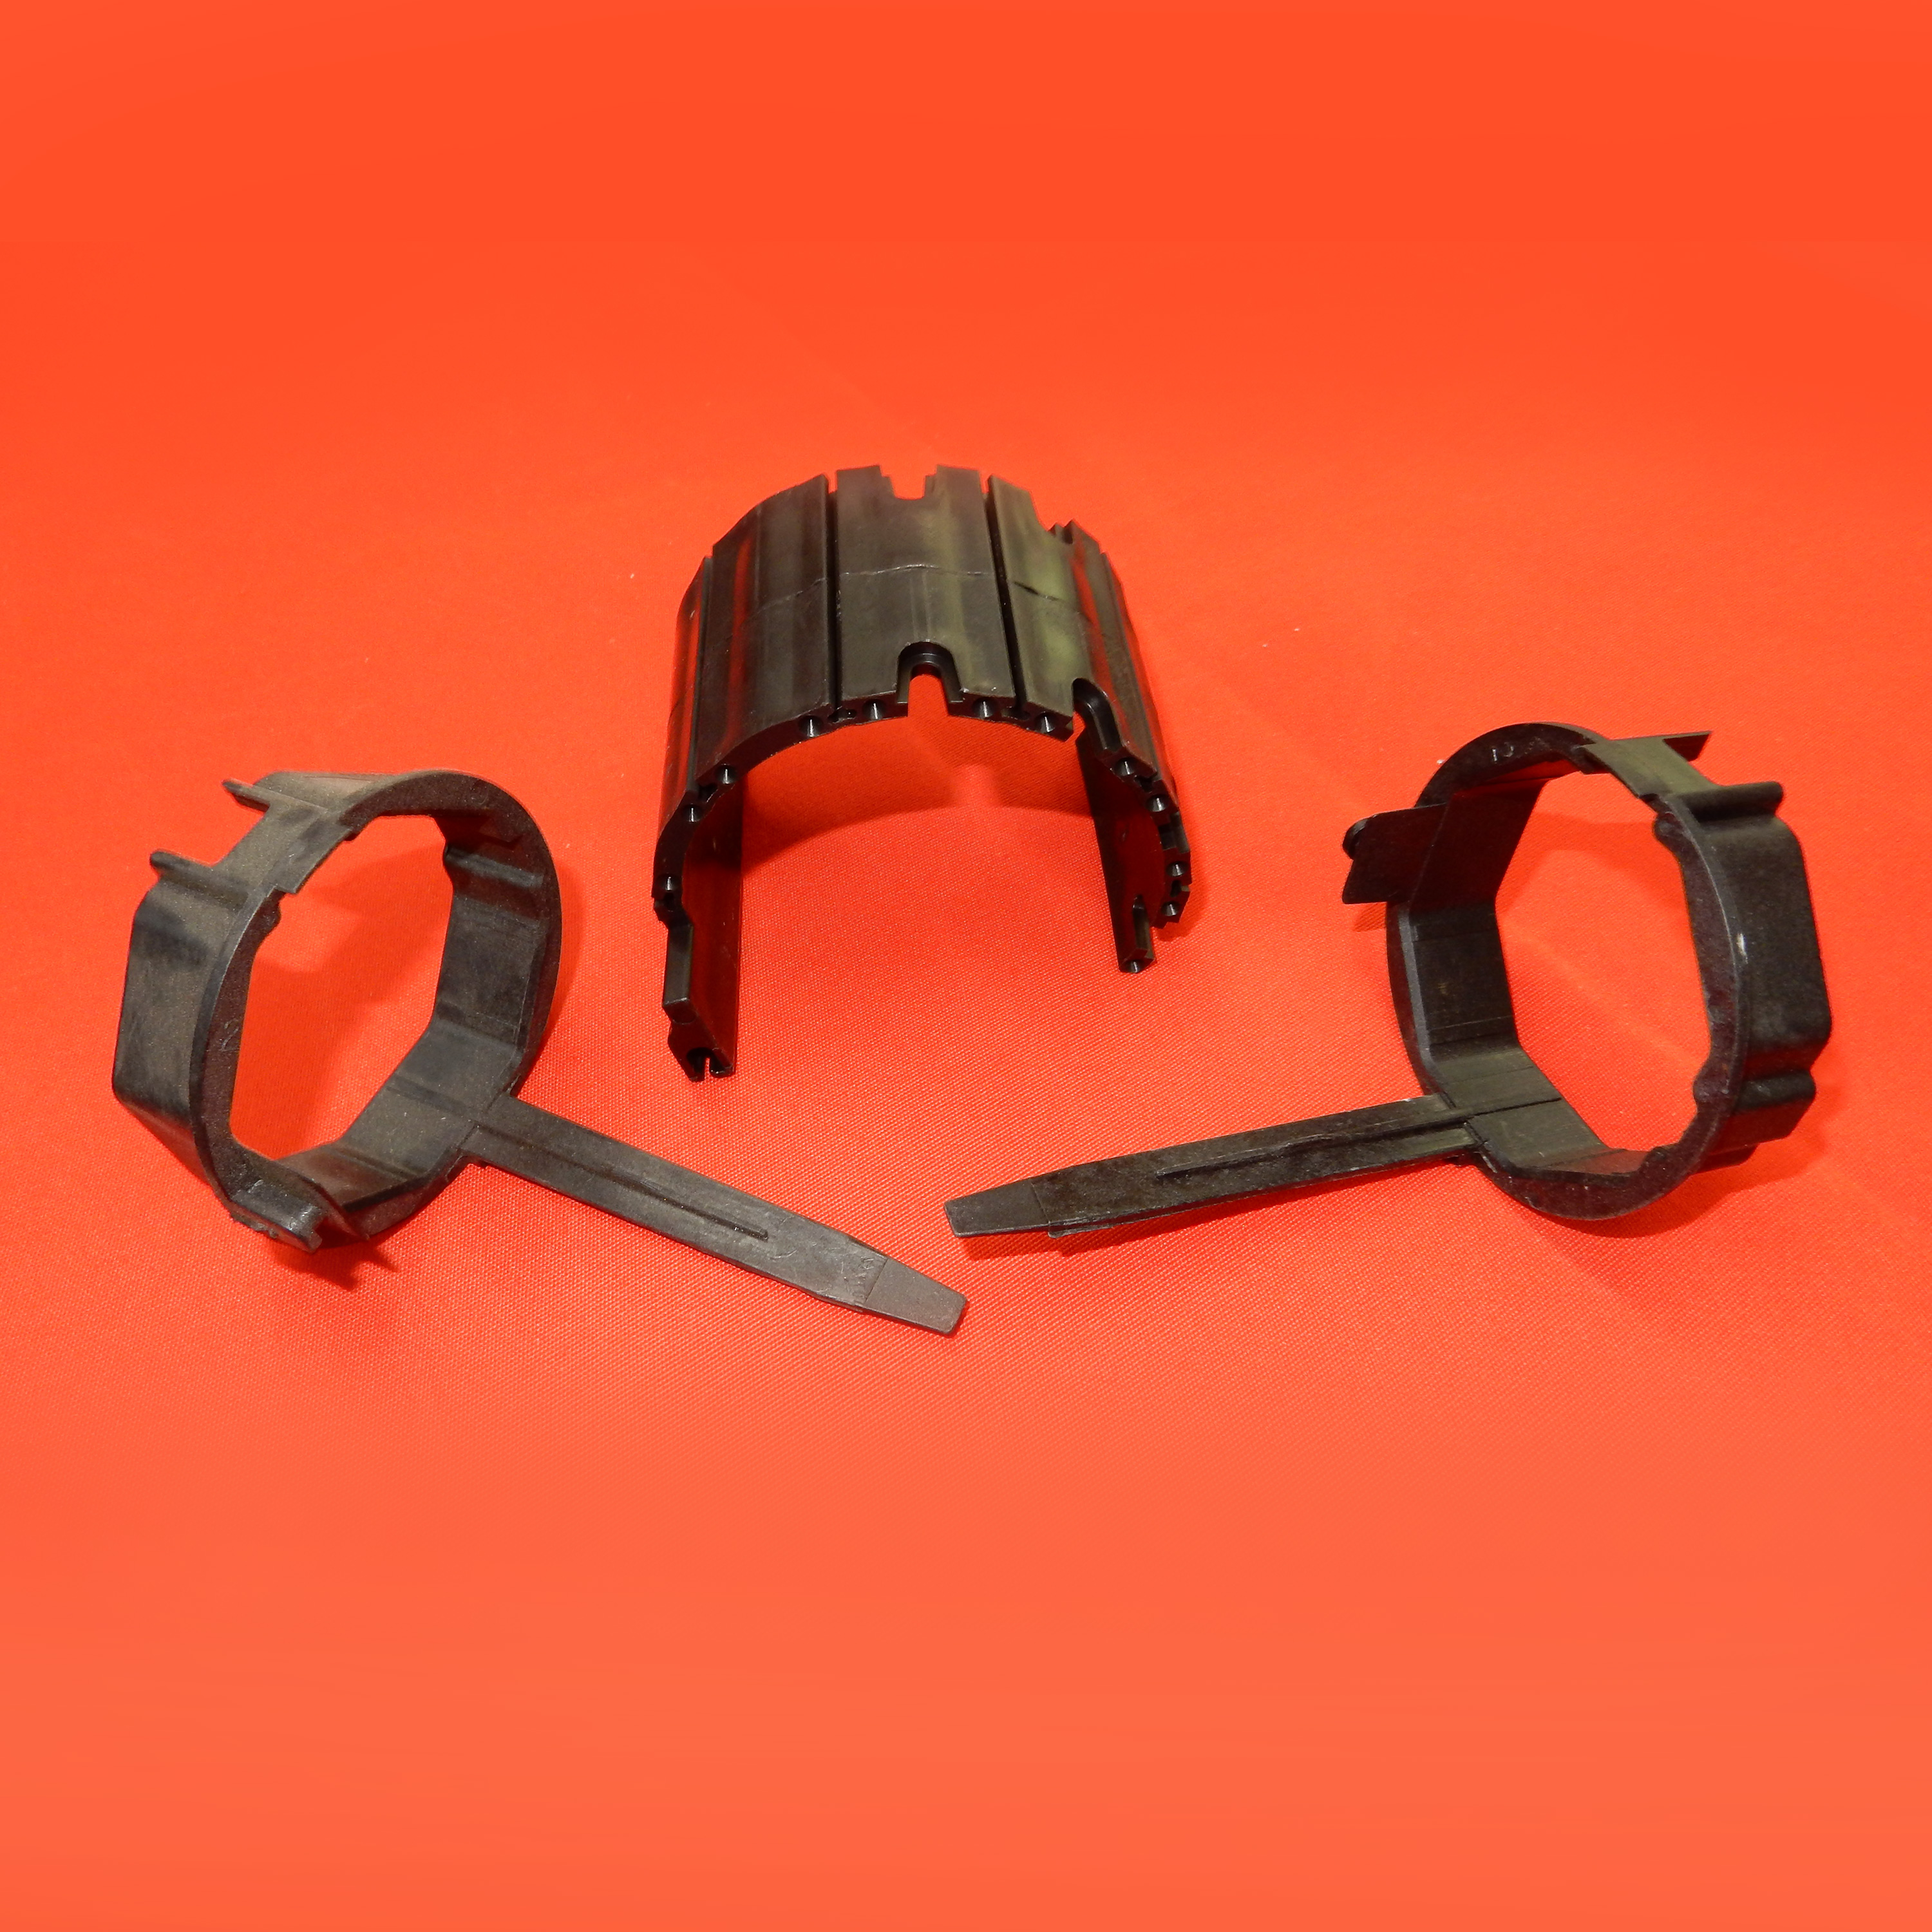 RDDP55 U0026 RDDP60 Combined Kit Roller Garage Door Locking Strap With Pair Of  Rings To Suit 60mm Octagonal Barrel